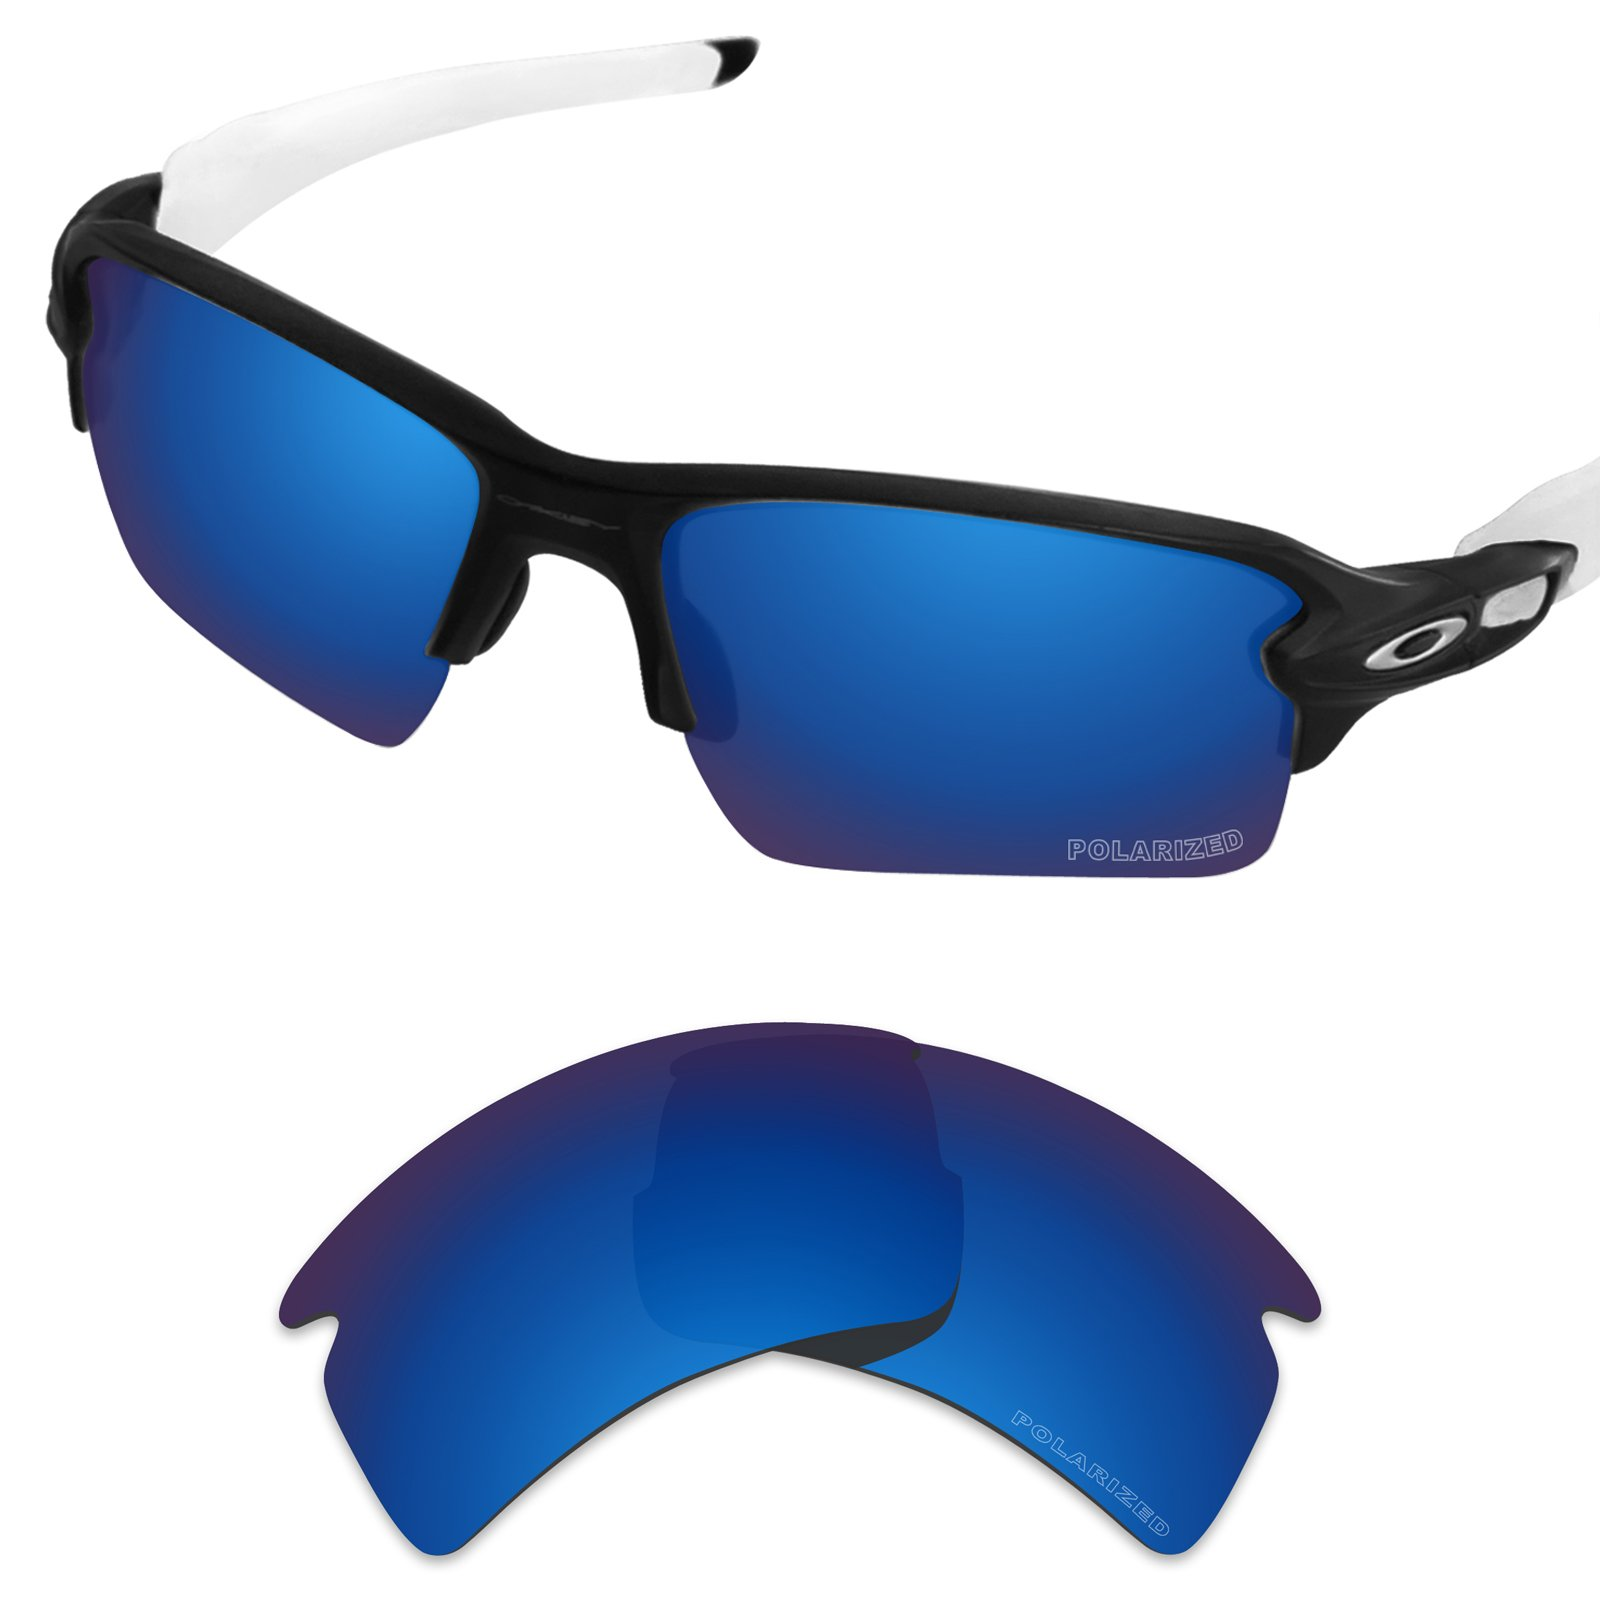 Tintart Performance Replacement Lenses for Oakley Flak 2.0 XL Sunglass Polarized Etched-Sapphire Blue